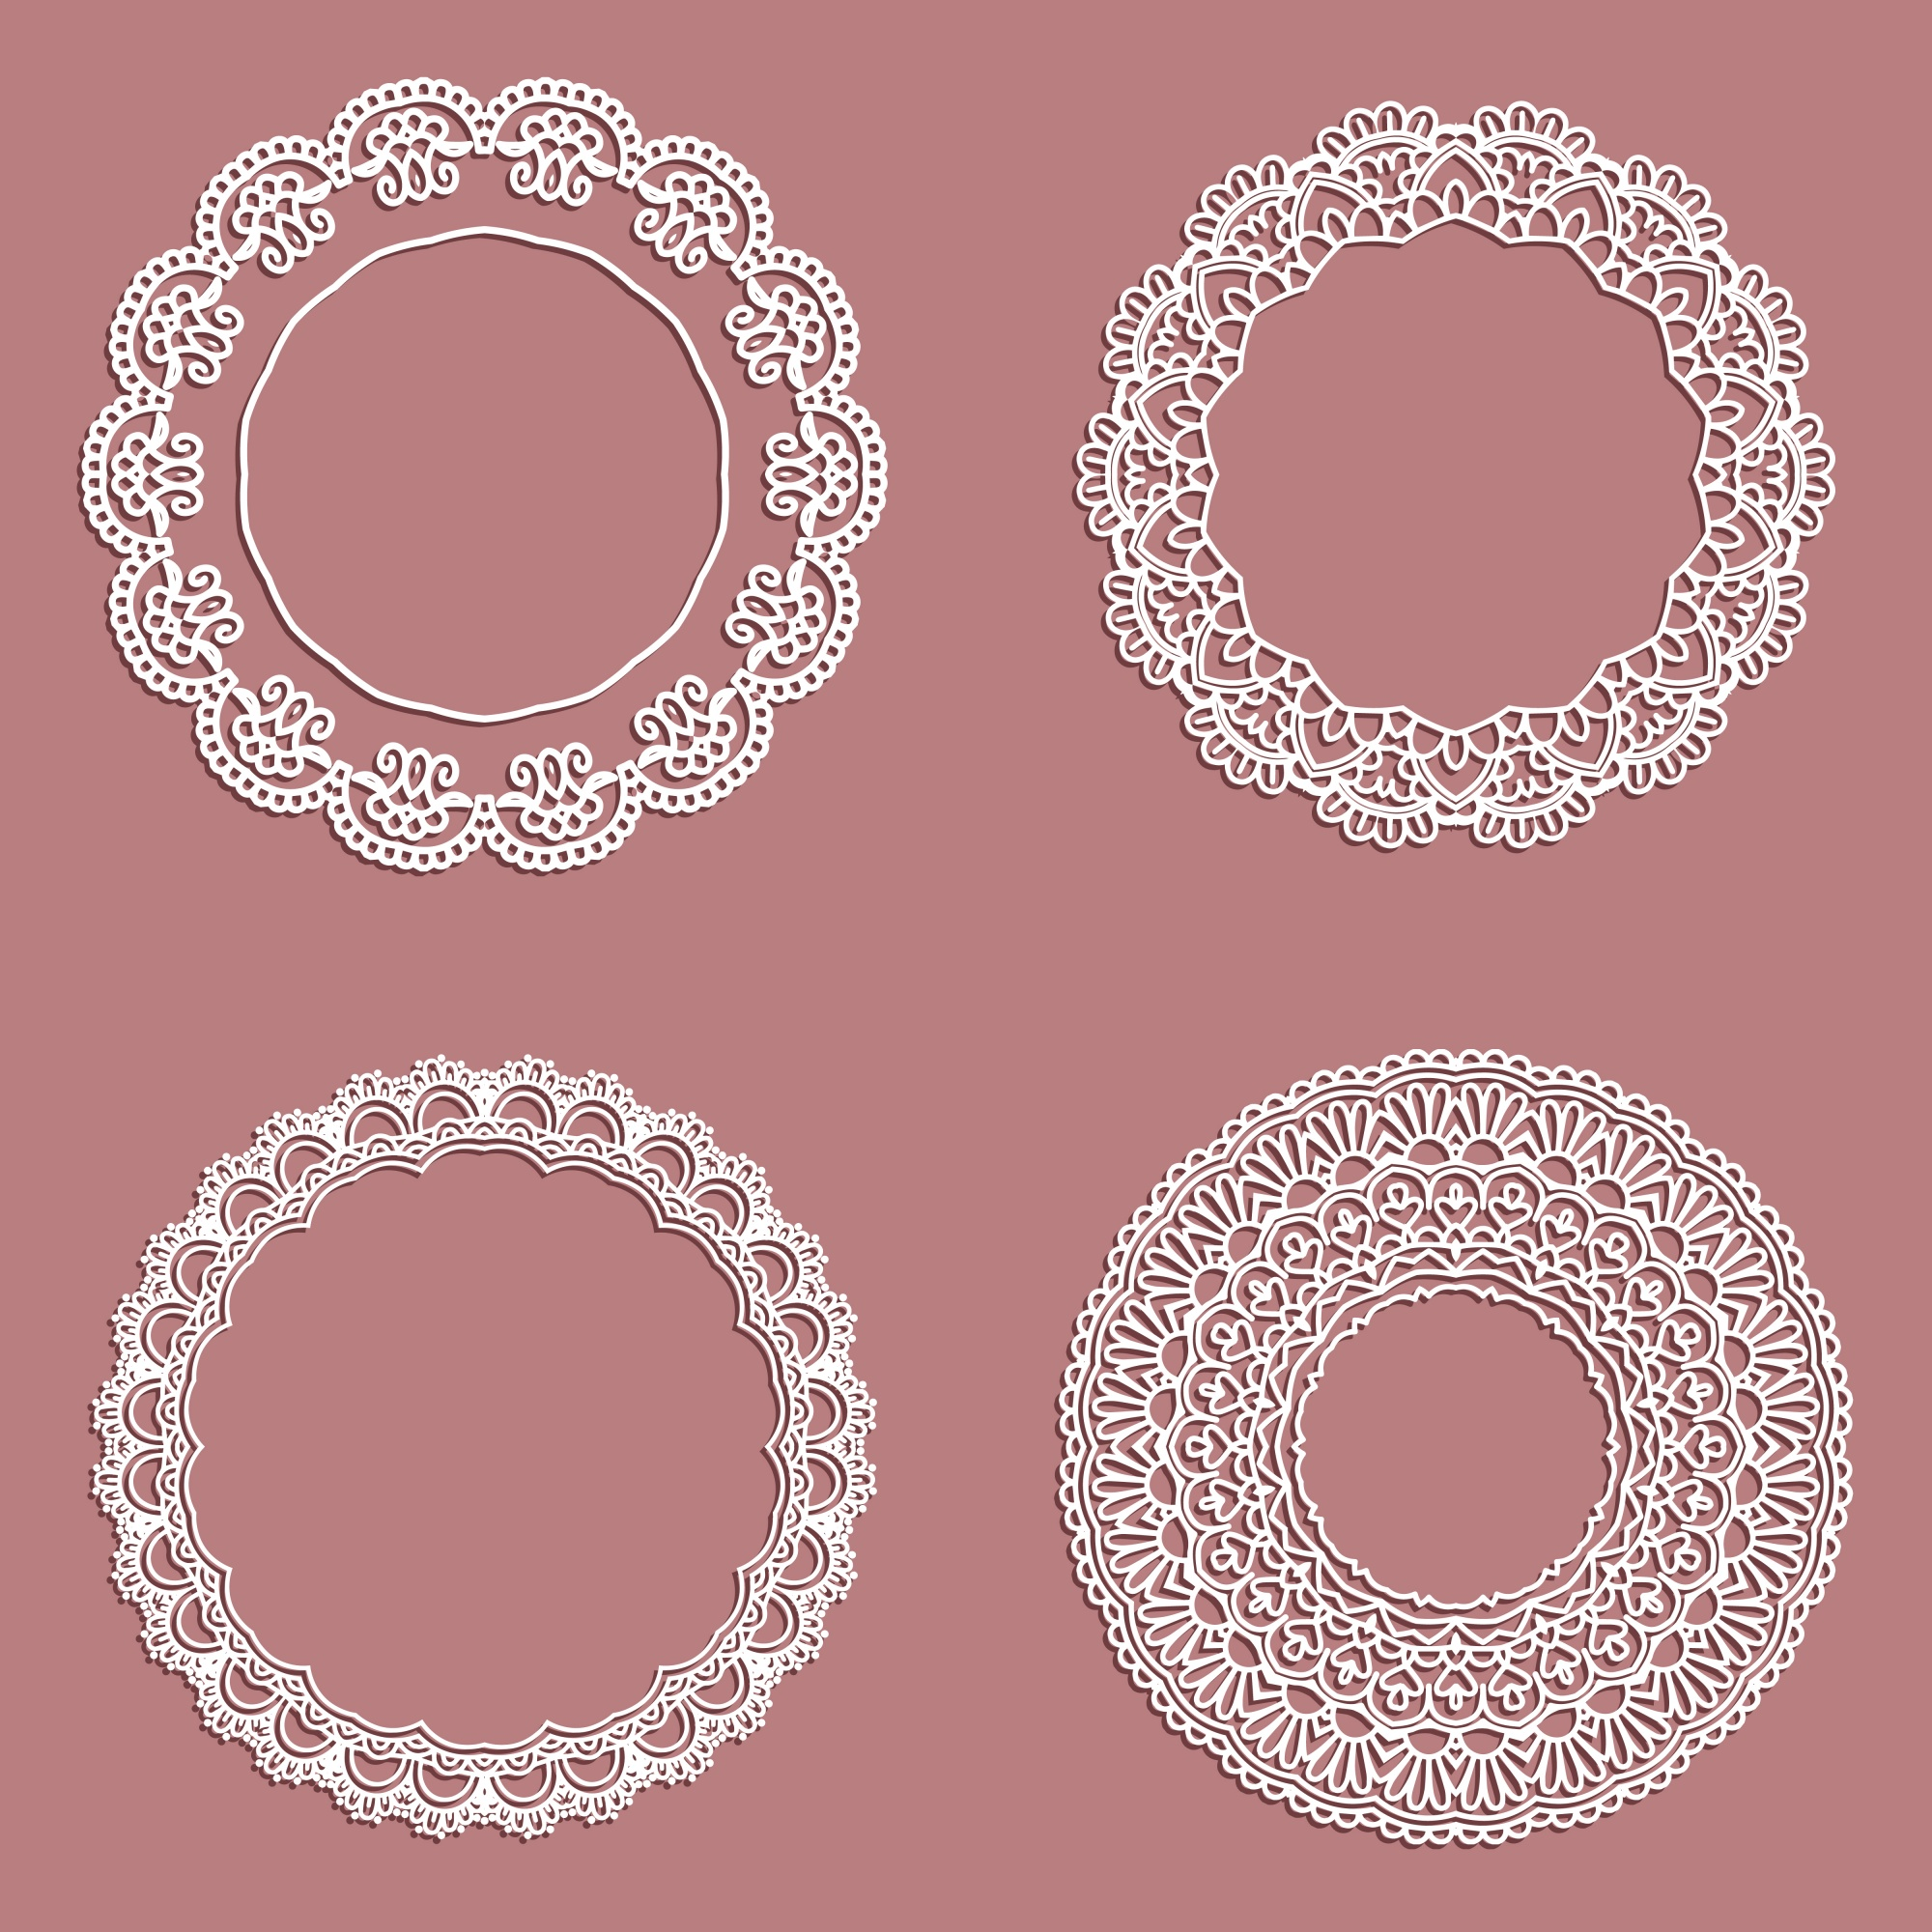 Collection of lace styled circular frames